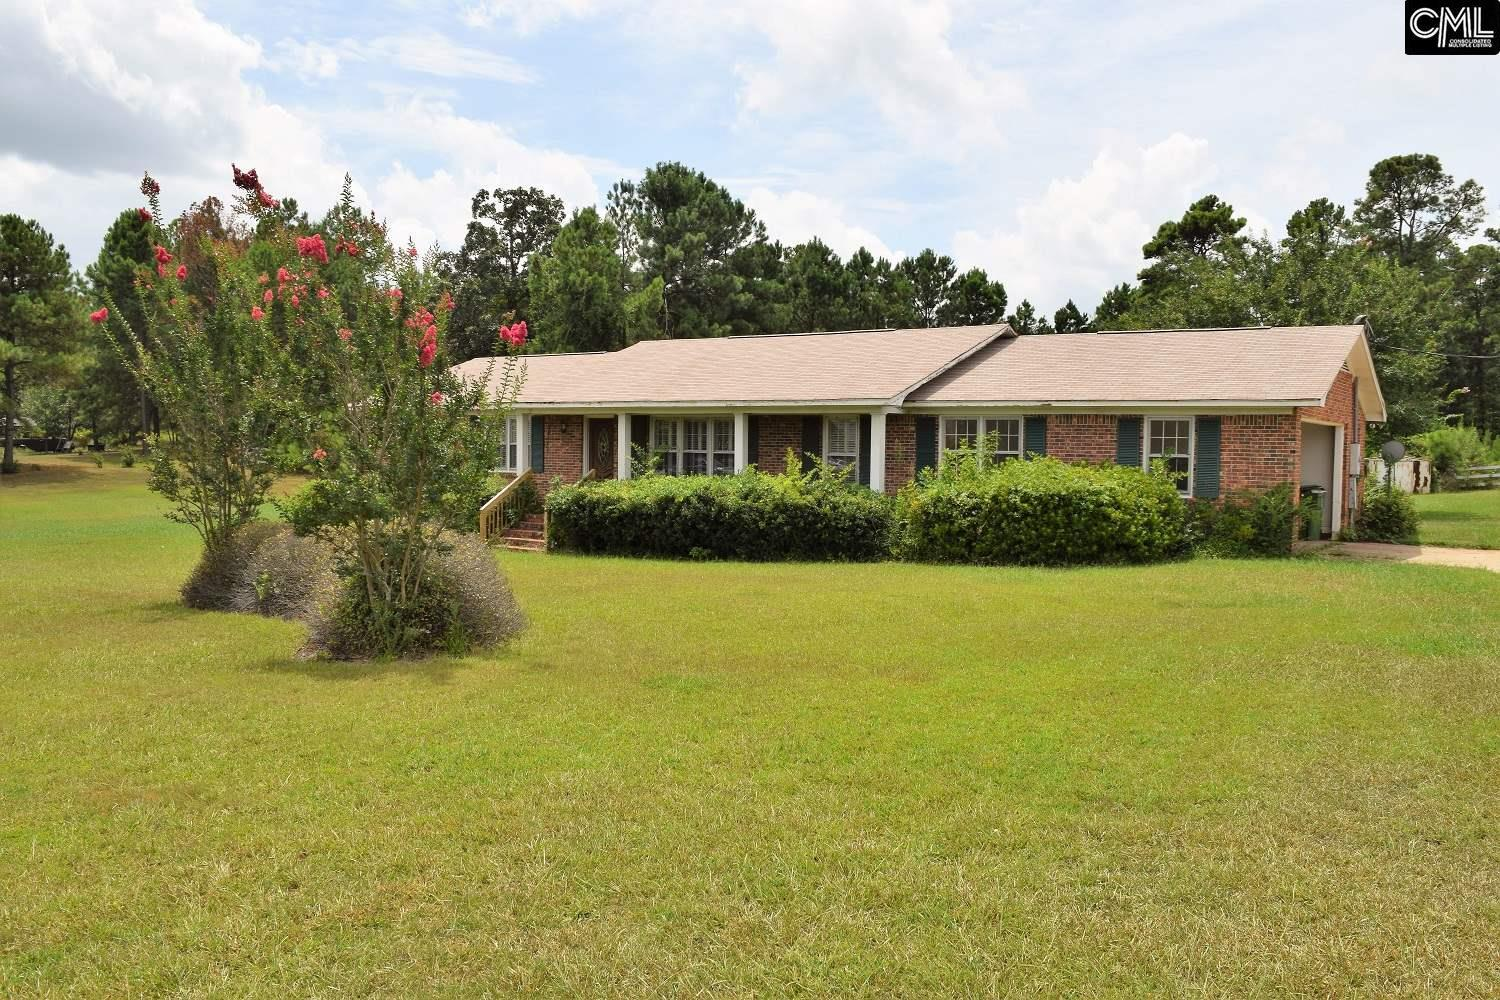 3 bed / 2 baths Home in Irmo for $1,695,000